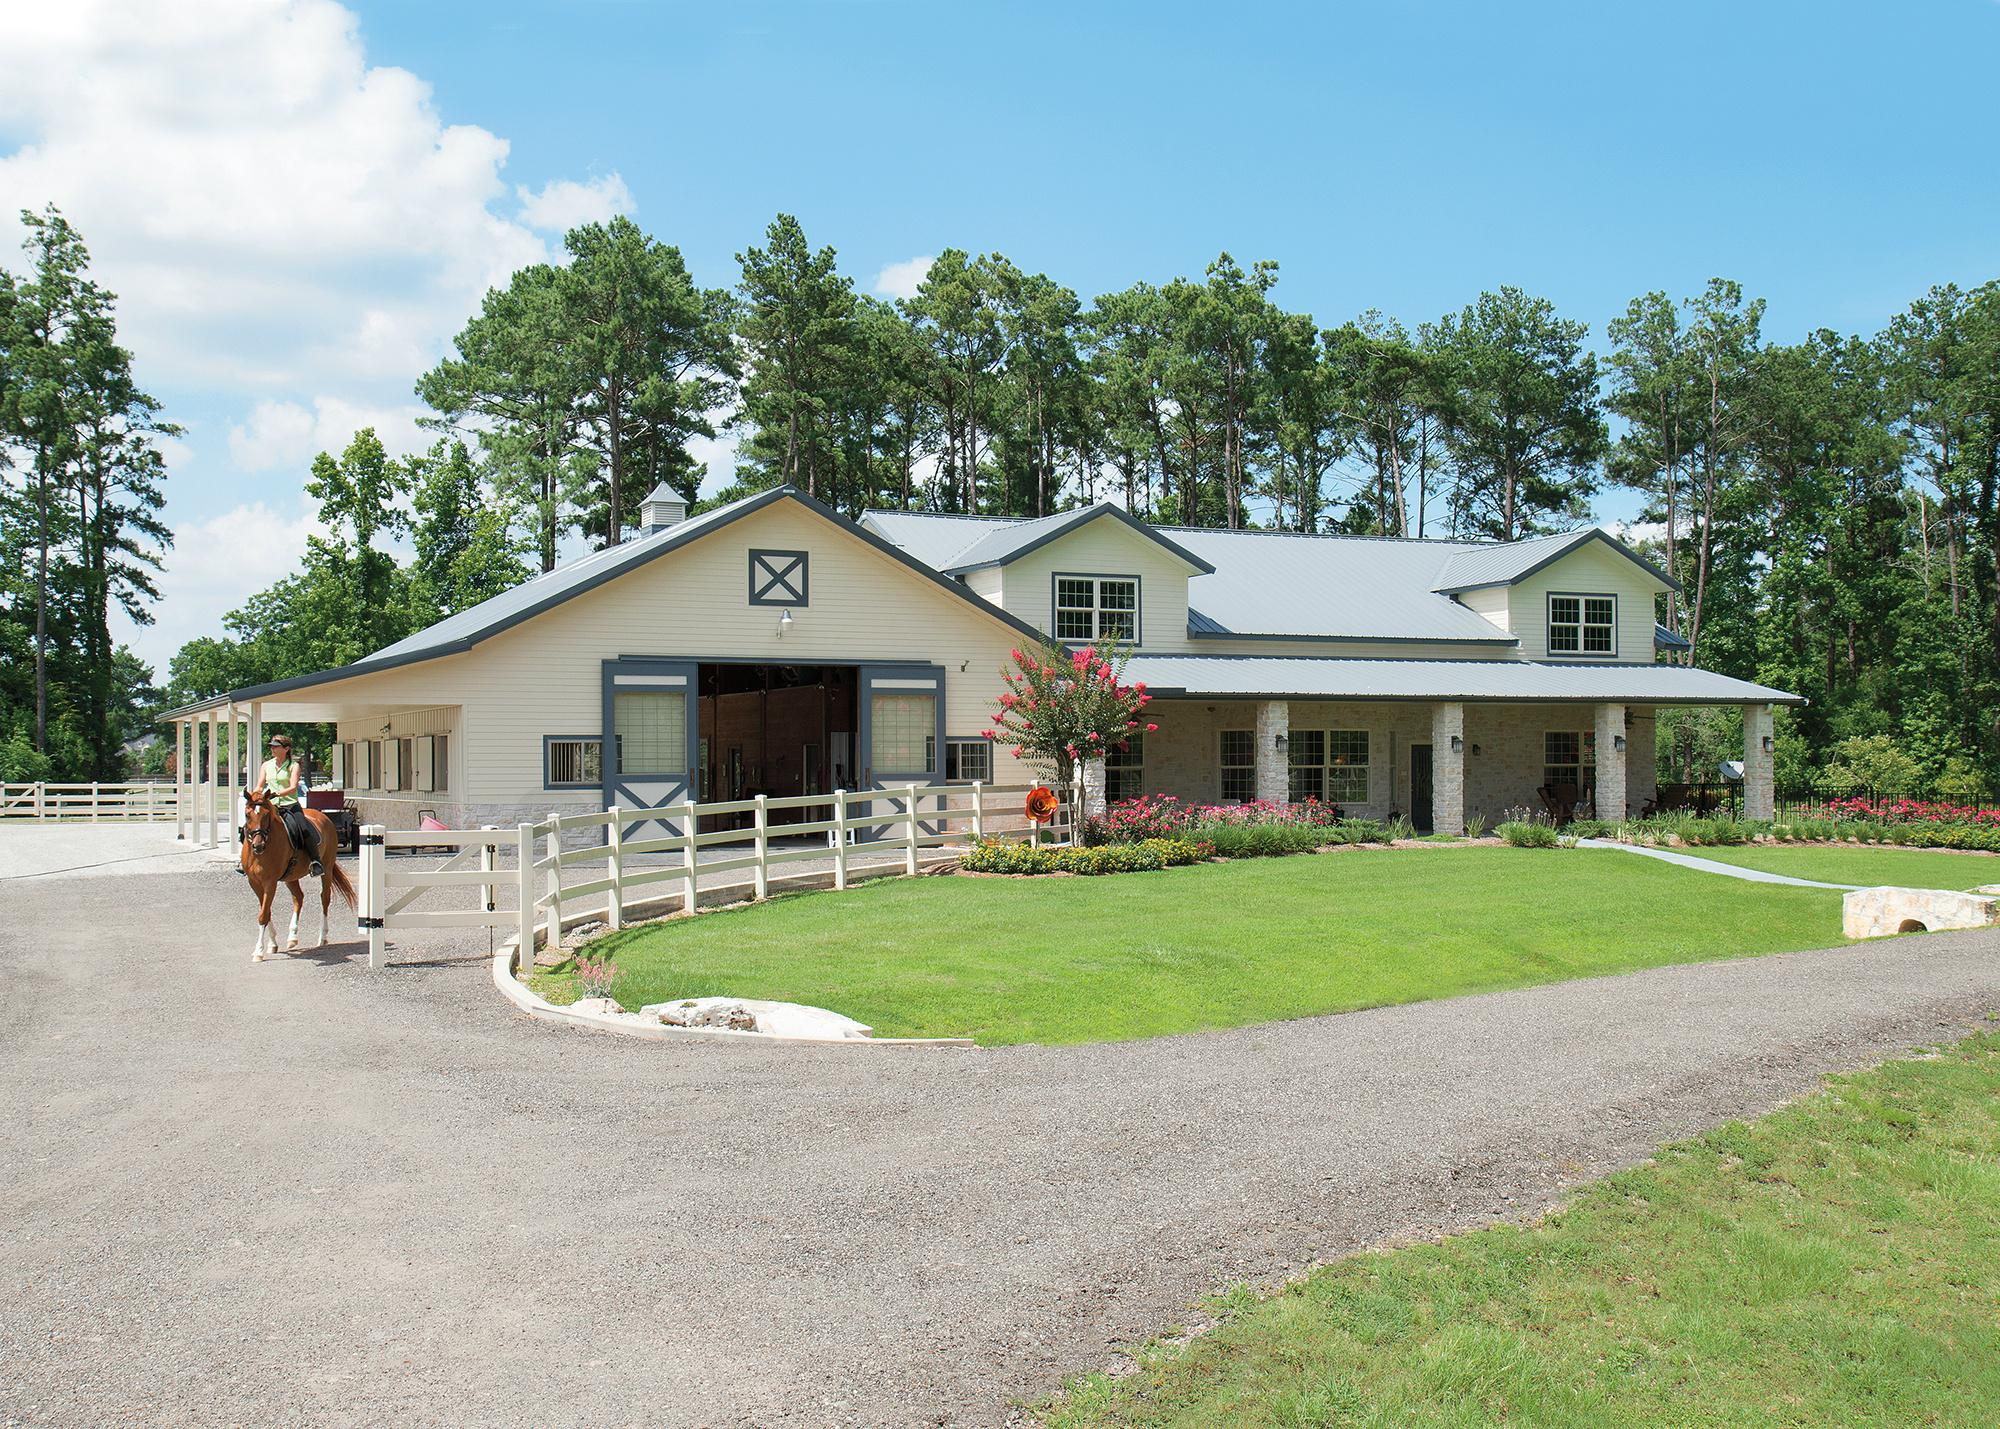 Embedded image permalink for Horse barn homes